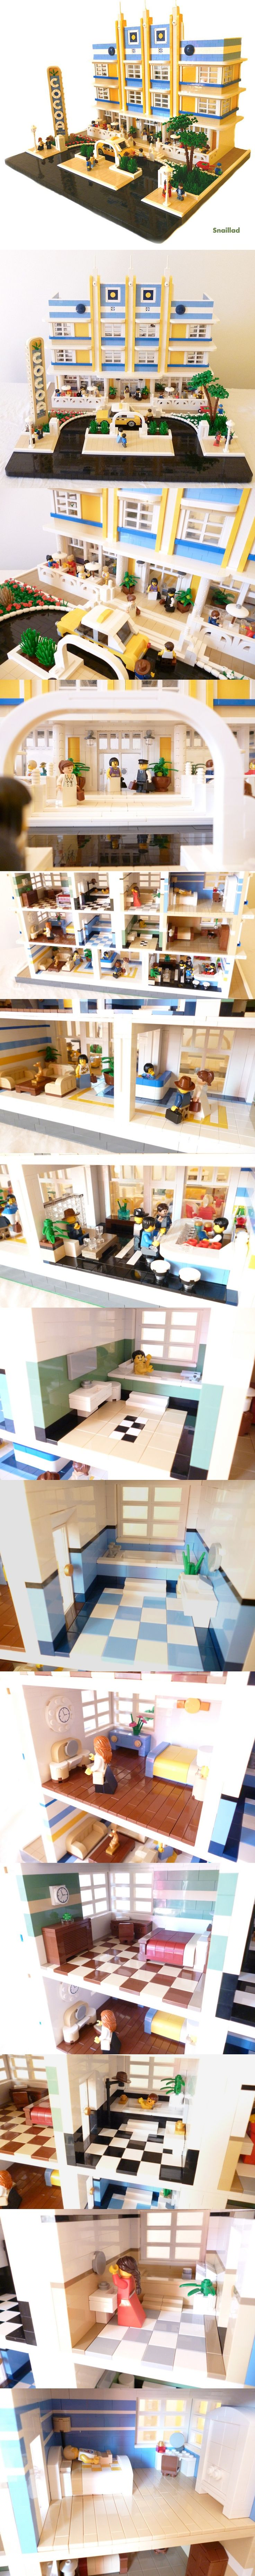 Lego - if it had a small fountain out front it would remind me of Anderson Ocean Club&Resort at Myrtle Beach, SC